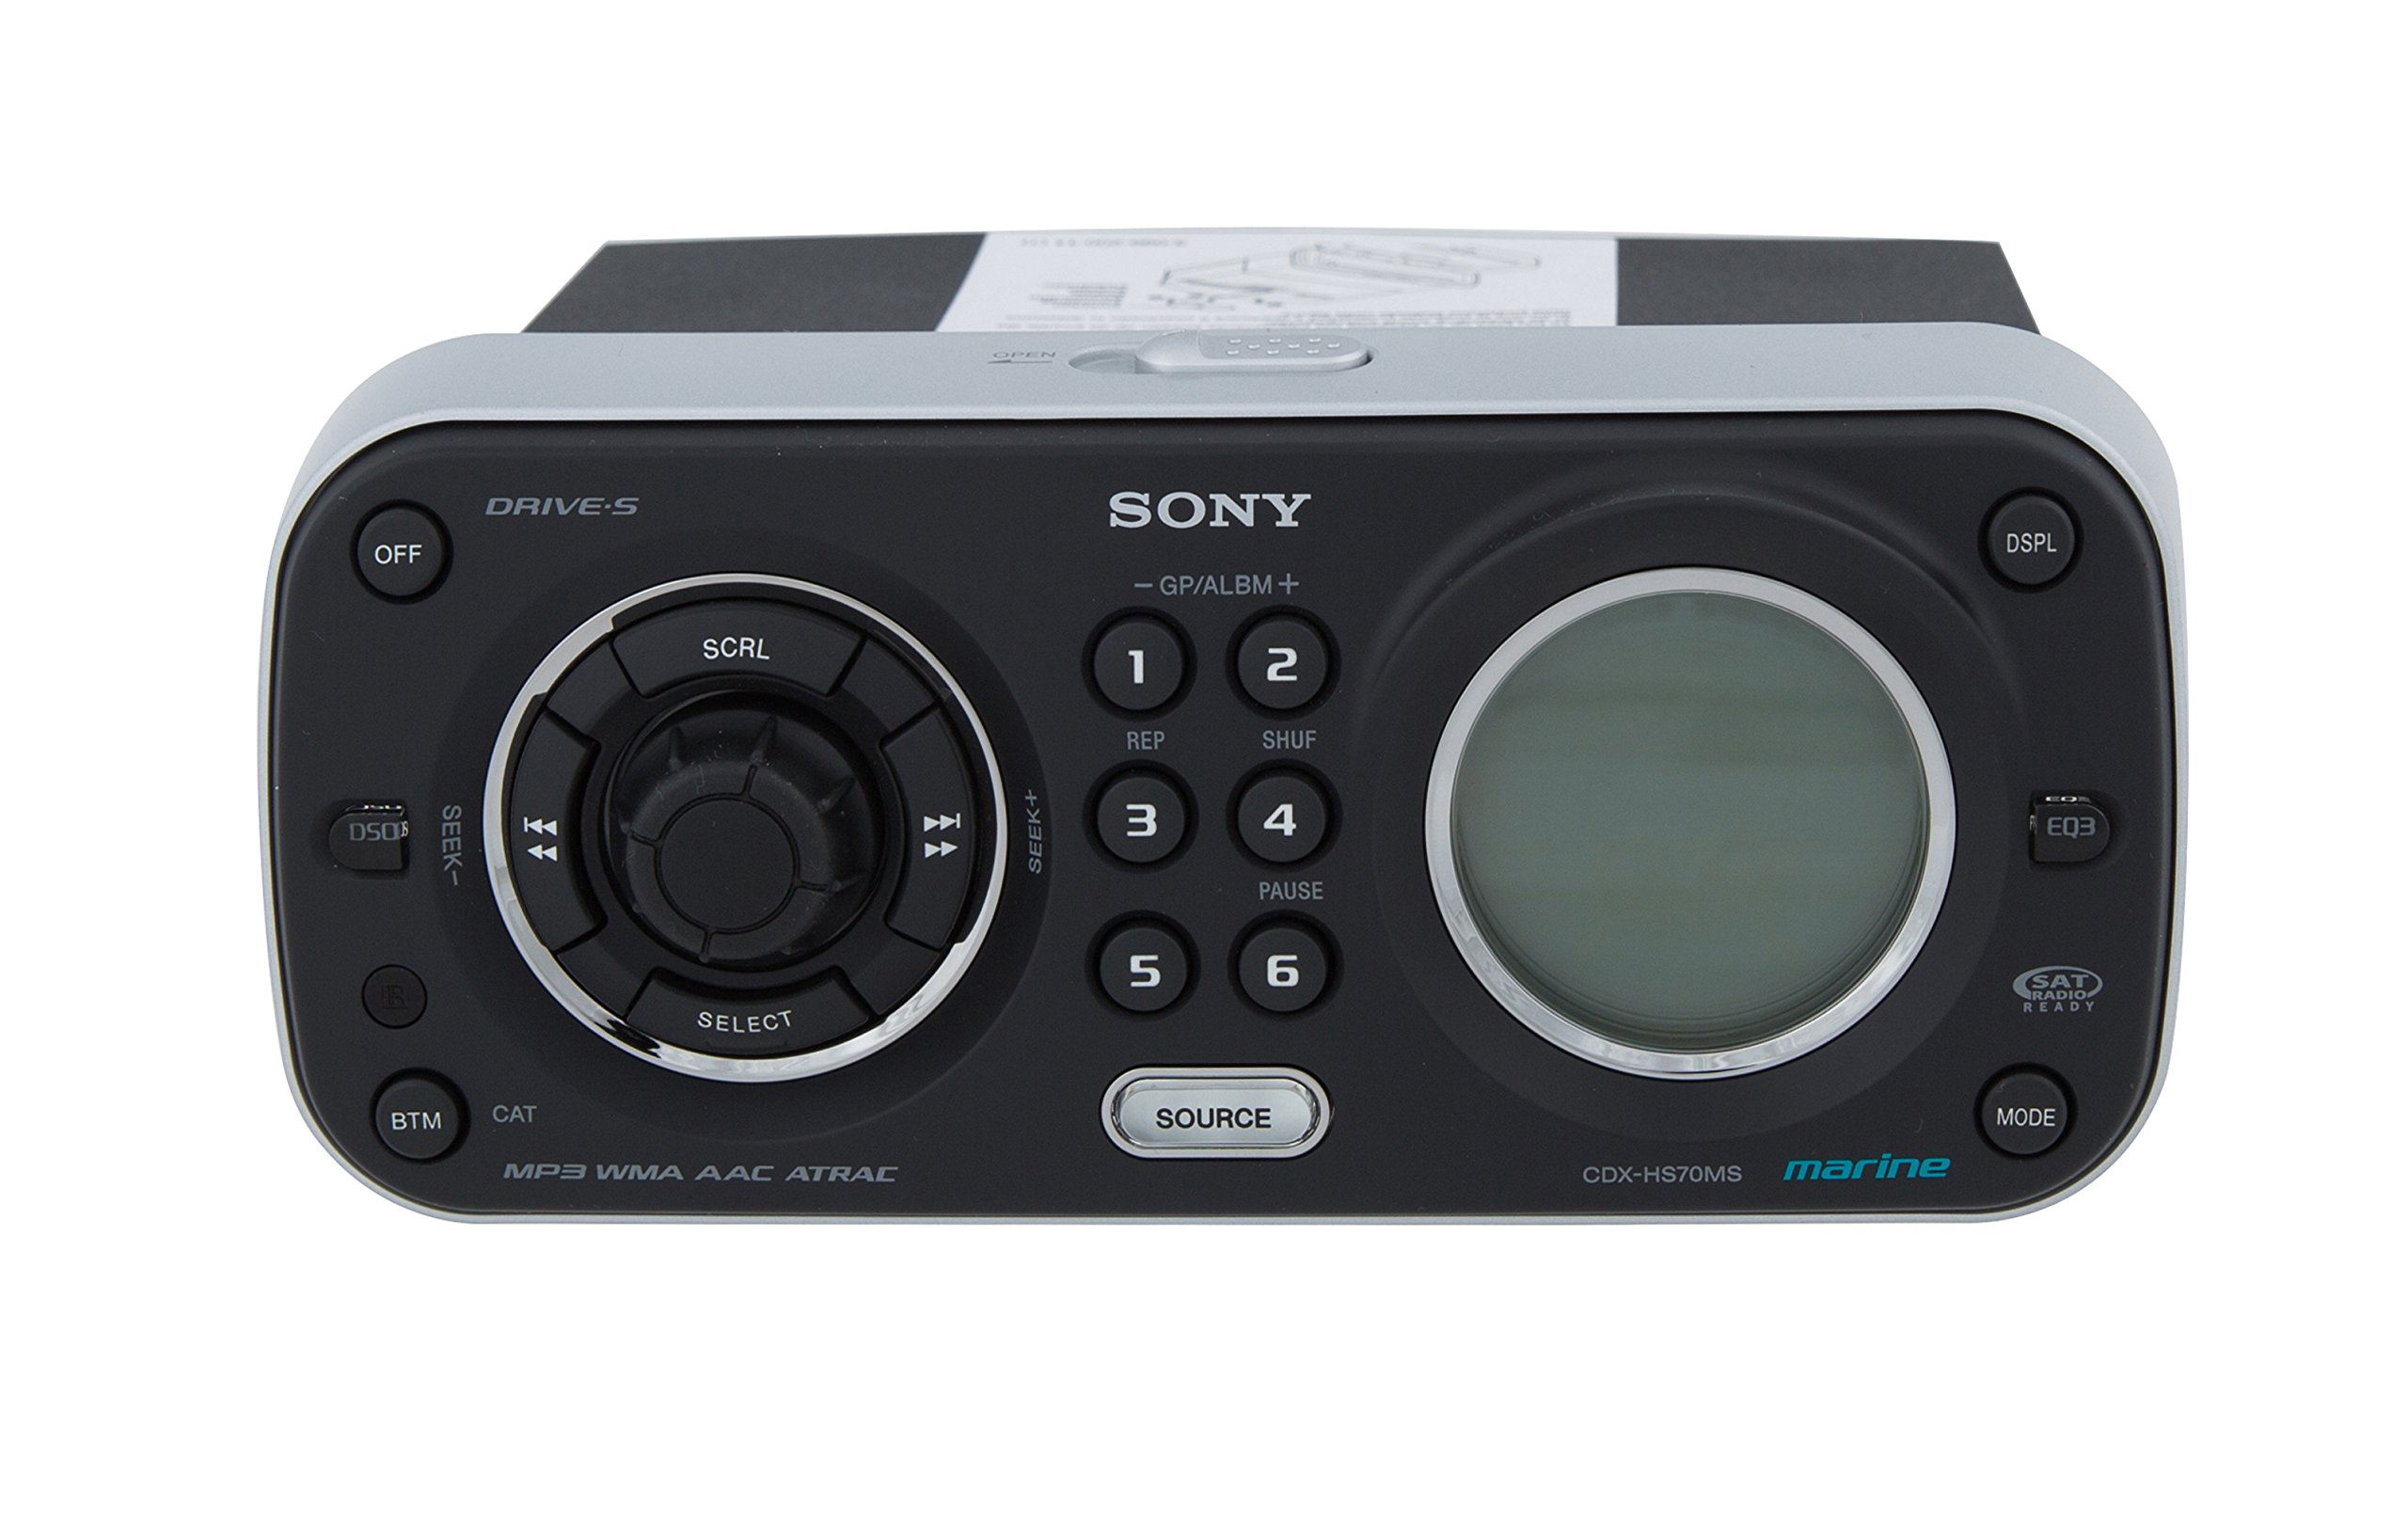 Sony CDX-HS70MS Marine Stereo Radio and CD Player by Sony